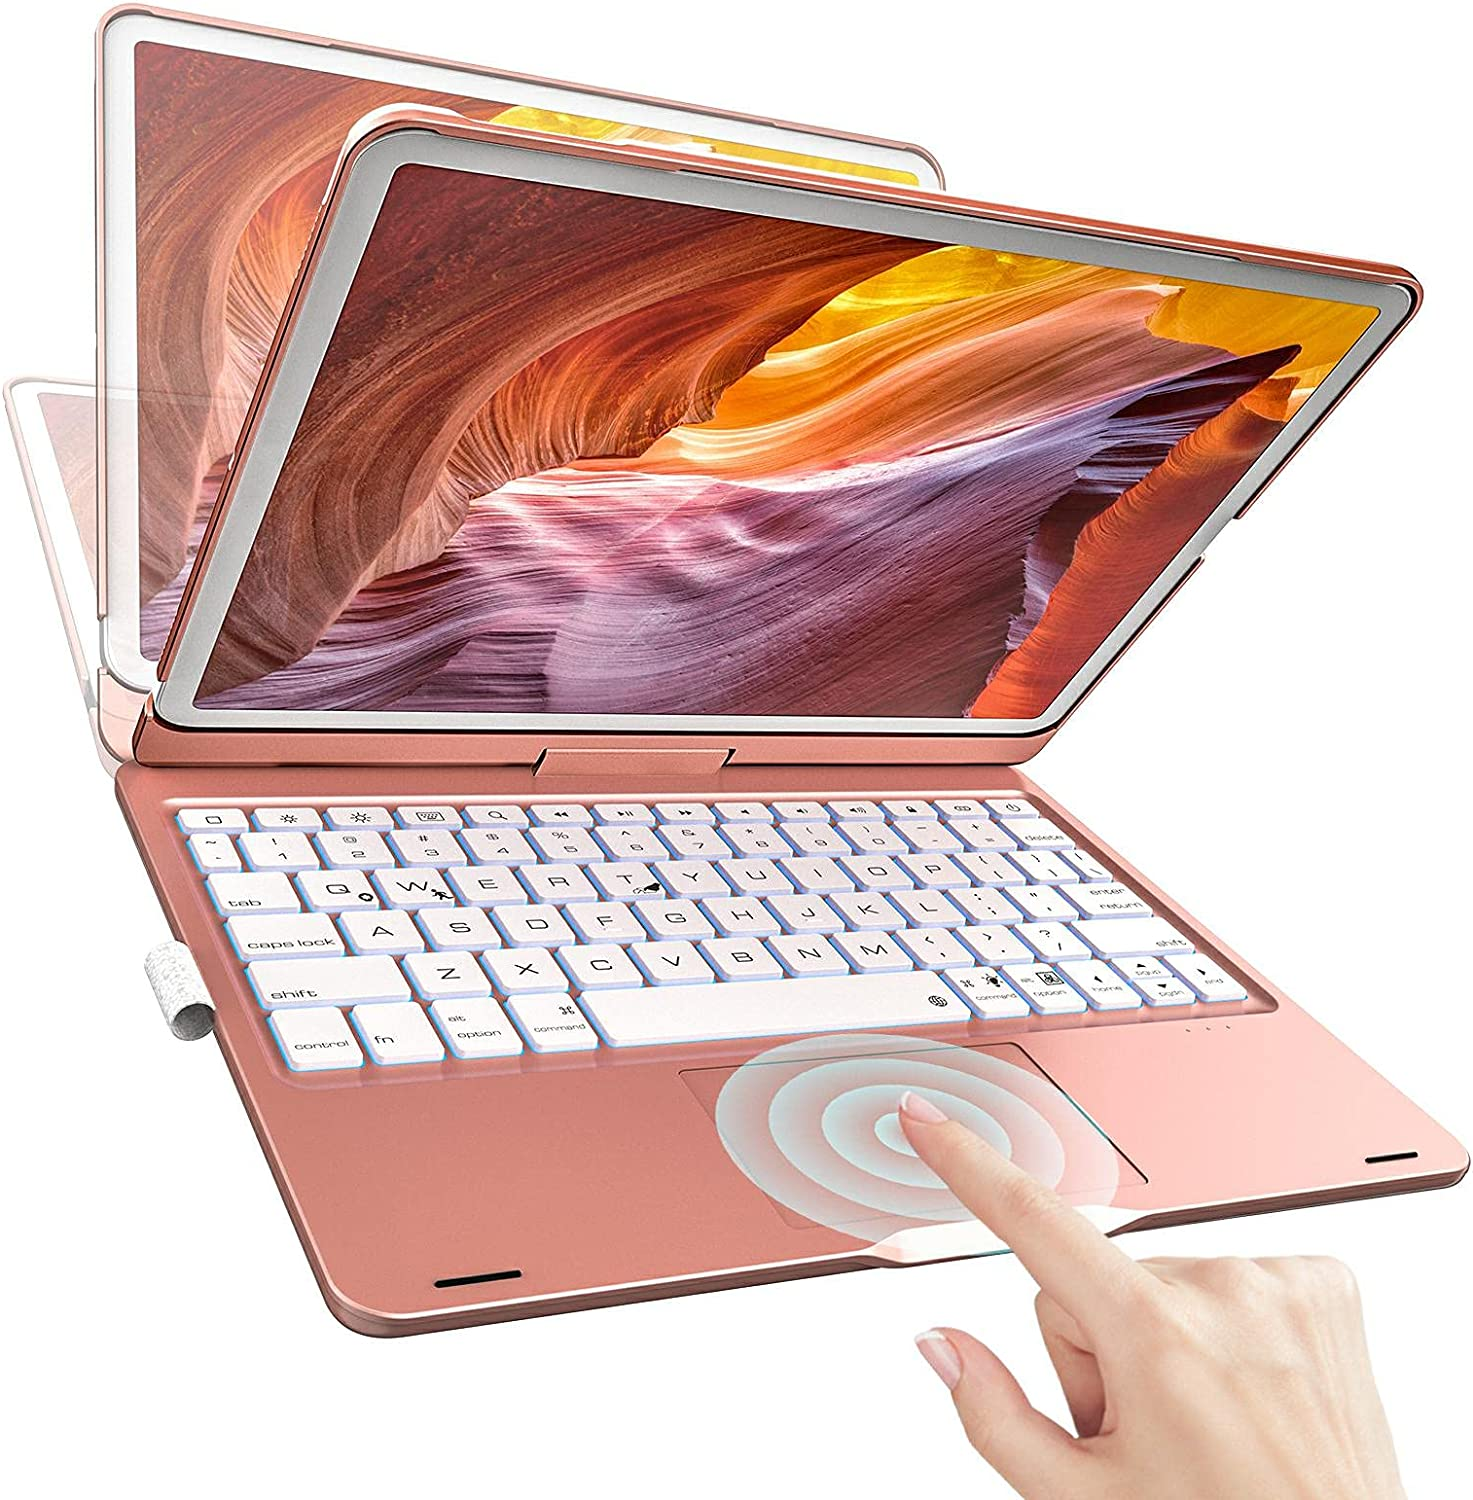 iPad Keyboard Case for 10.2 inch iPad 8th Gen 2020, 7th Gen 2019, Touchpad Keyboard Compatible with 10.5 inch iPad Air 3 2019, Pro 2017,360 Rotatable Backlight Keyboard with Pencil Holder (Rose Gold)